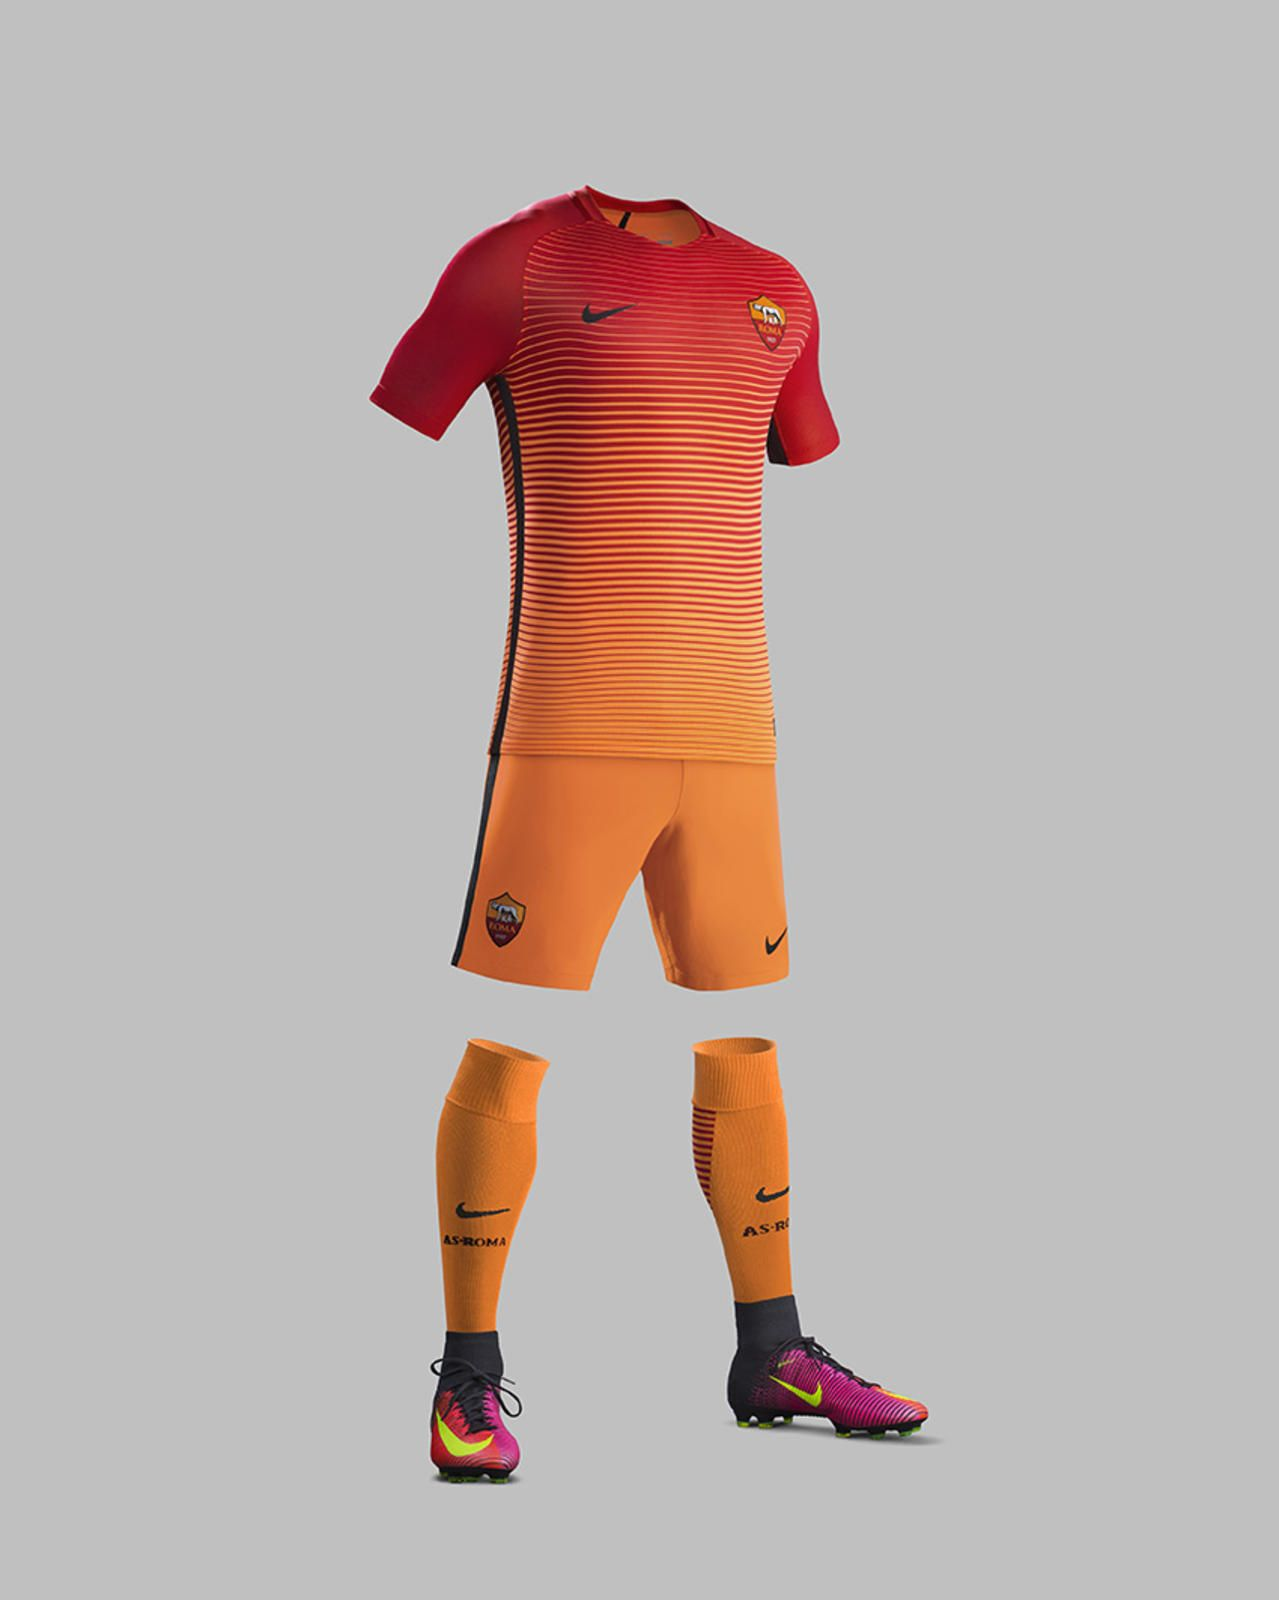 Terceira camisa da AS Roma 2016-2017 Nike kit 66315763db0d8